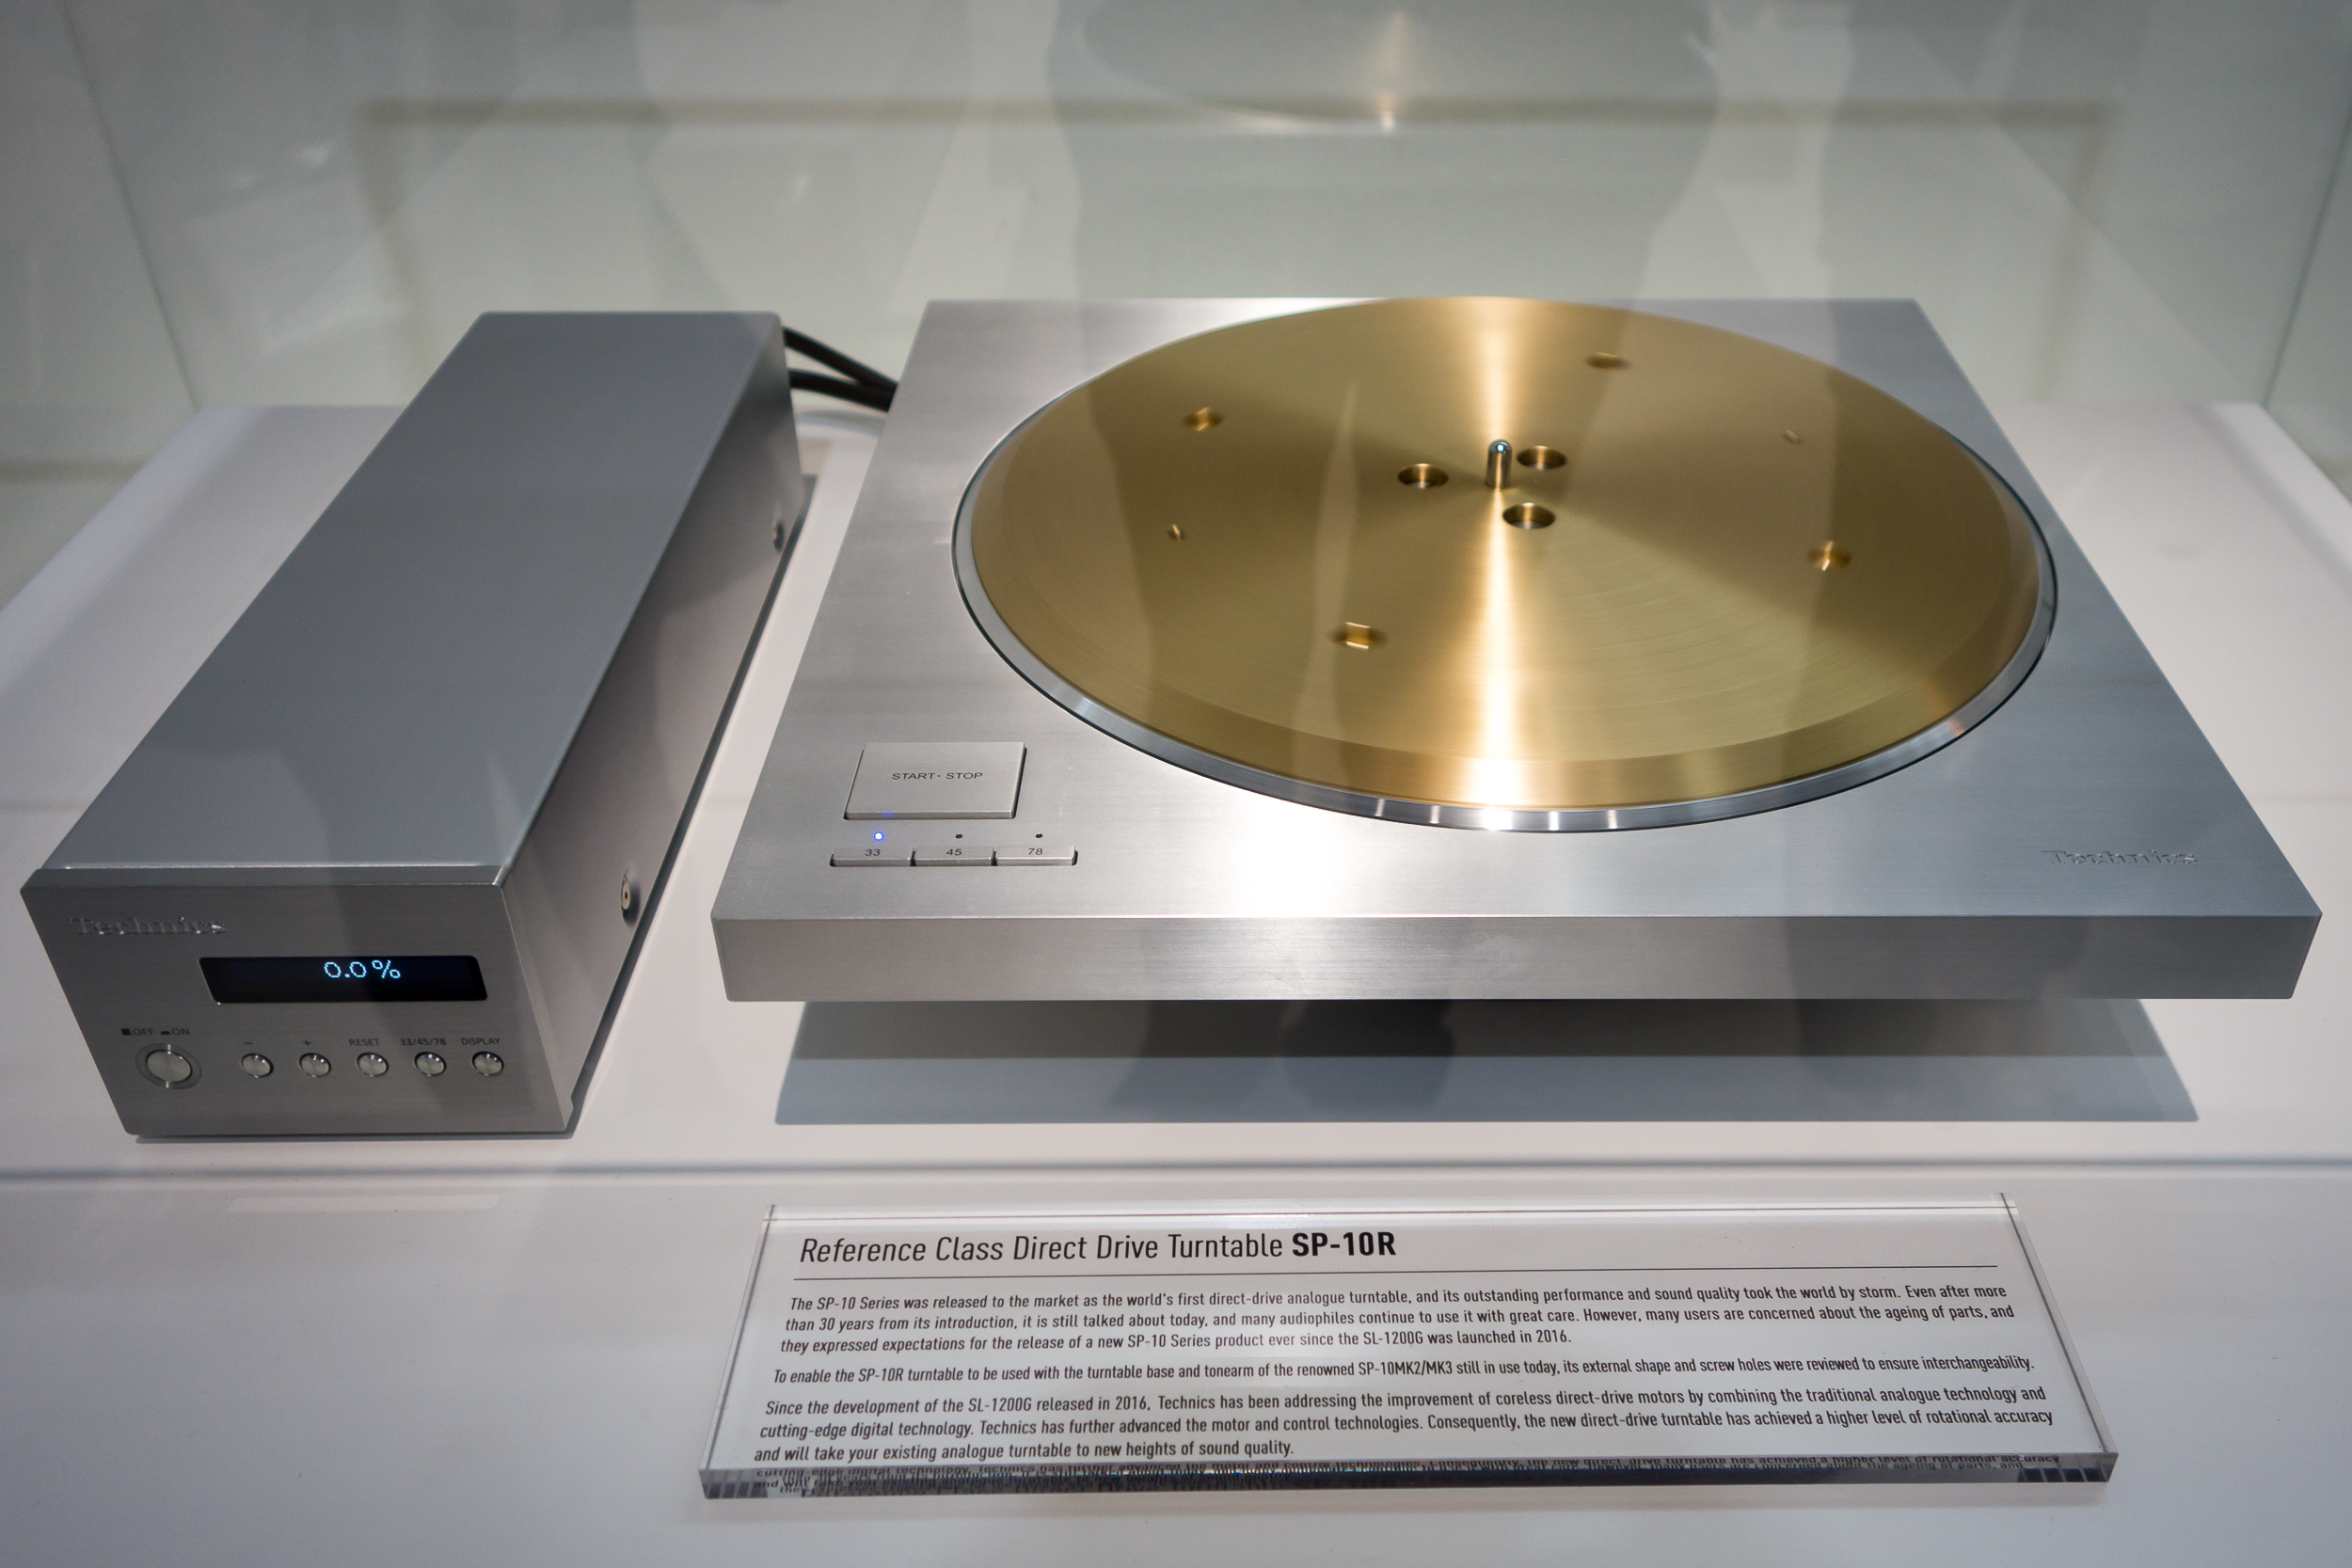 An honourable mention goes out to the Technics SP-10R.